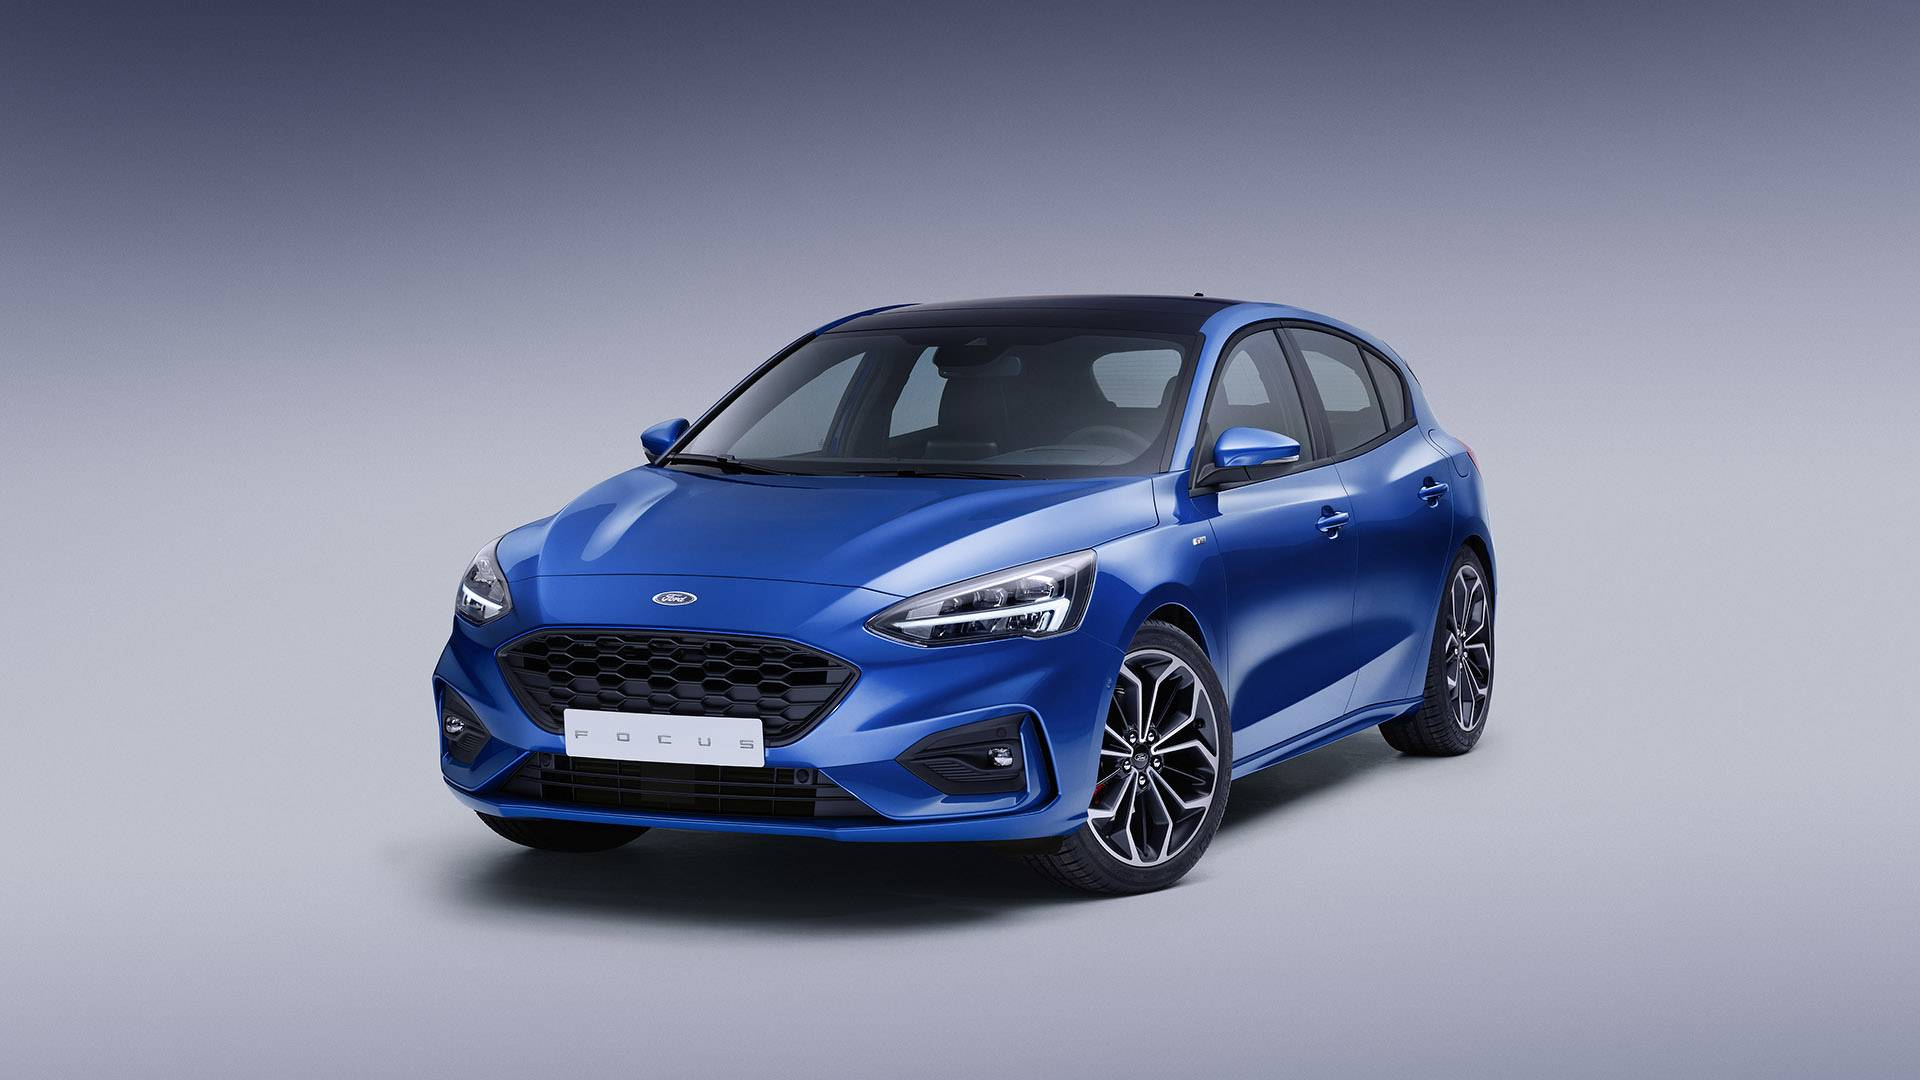 2019 ford focus iv goes official it s better in every single way autoevolution. Black Bedroom Furniture Sets. Home Design Ideas